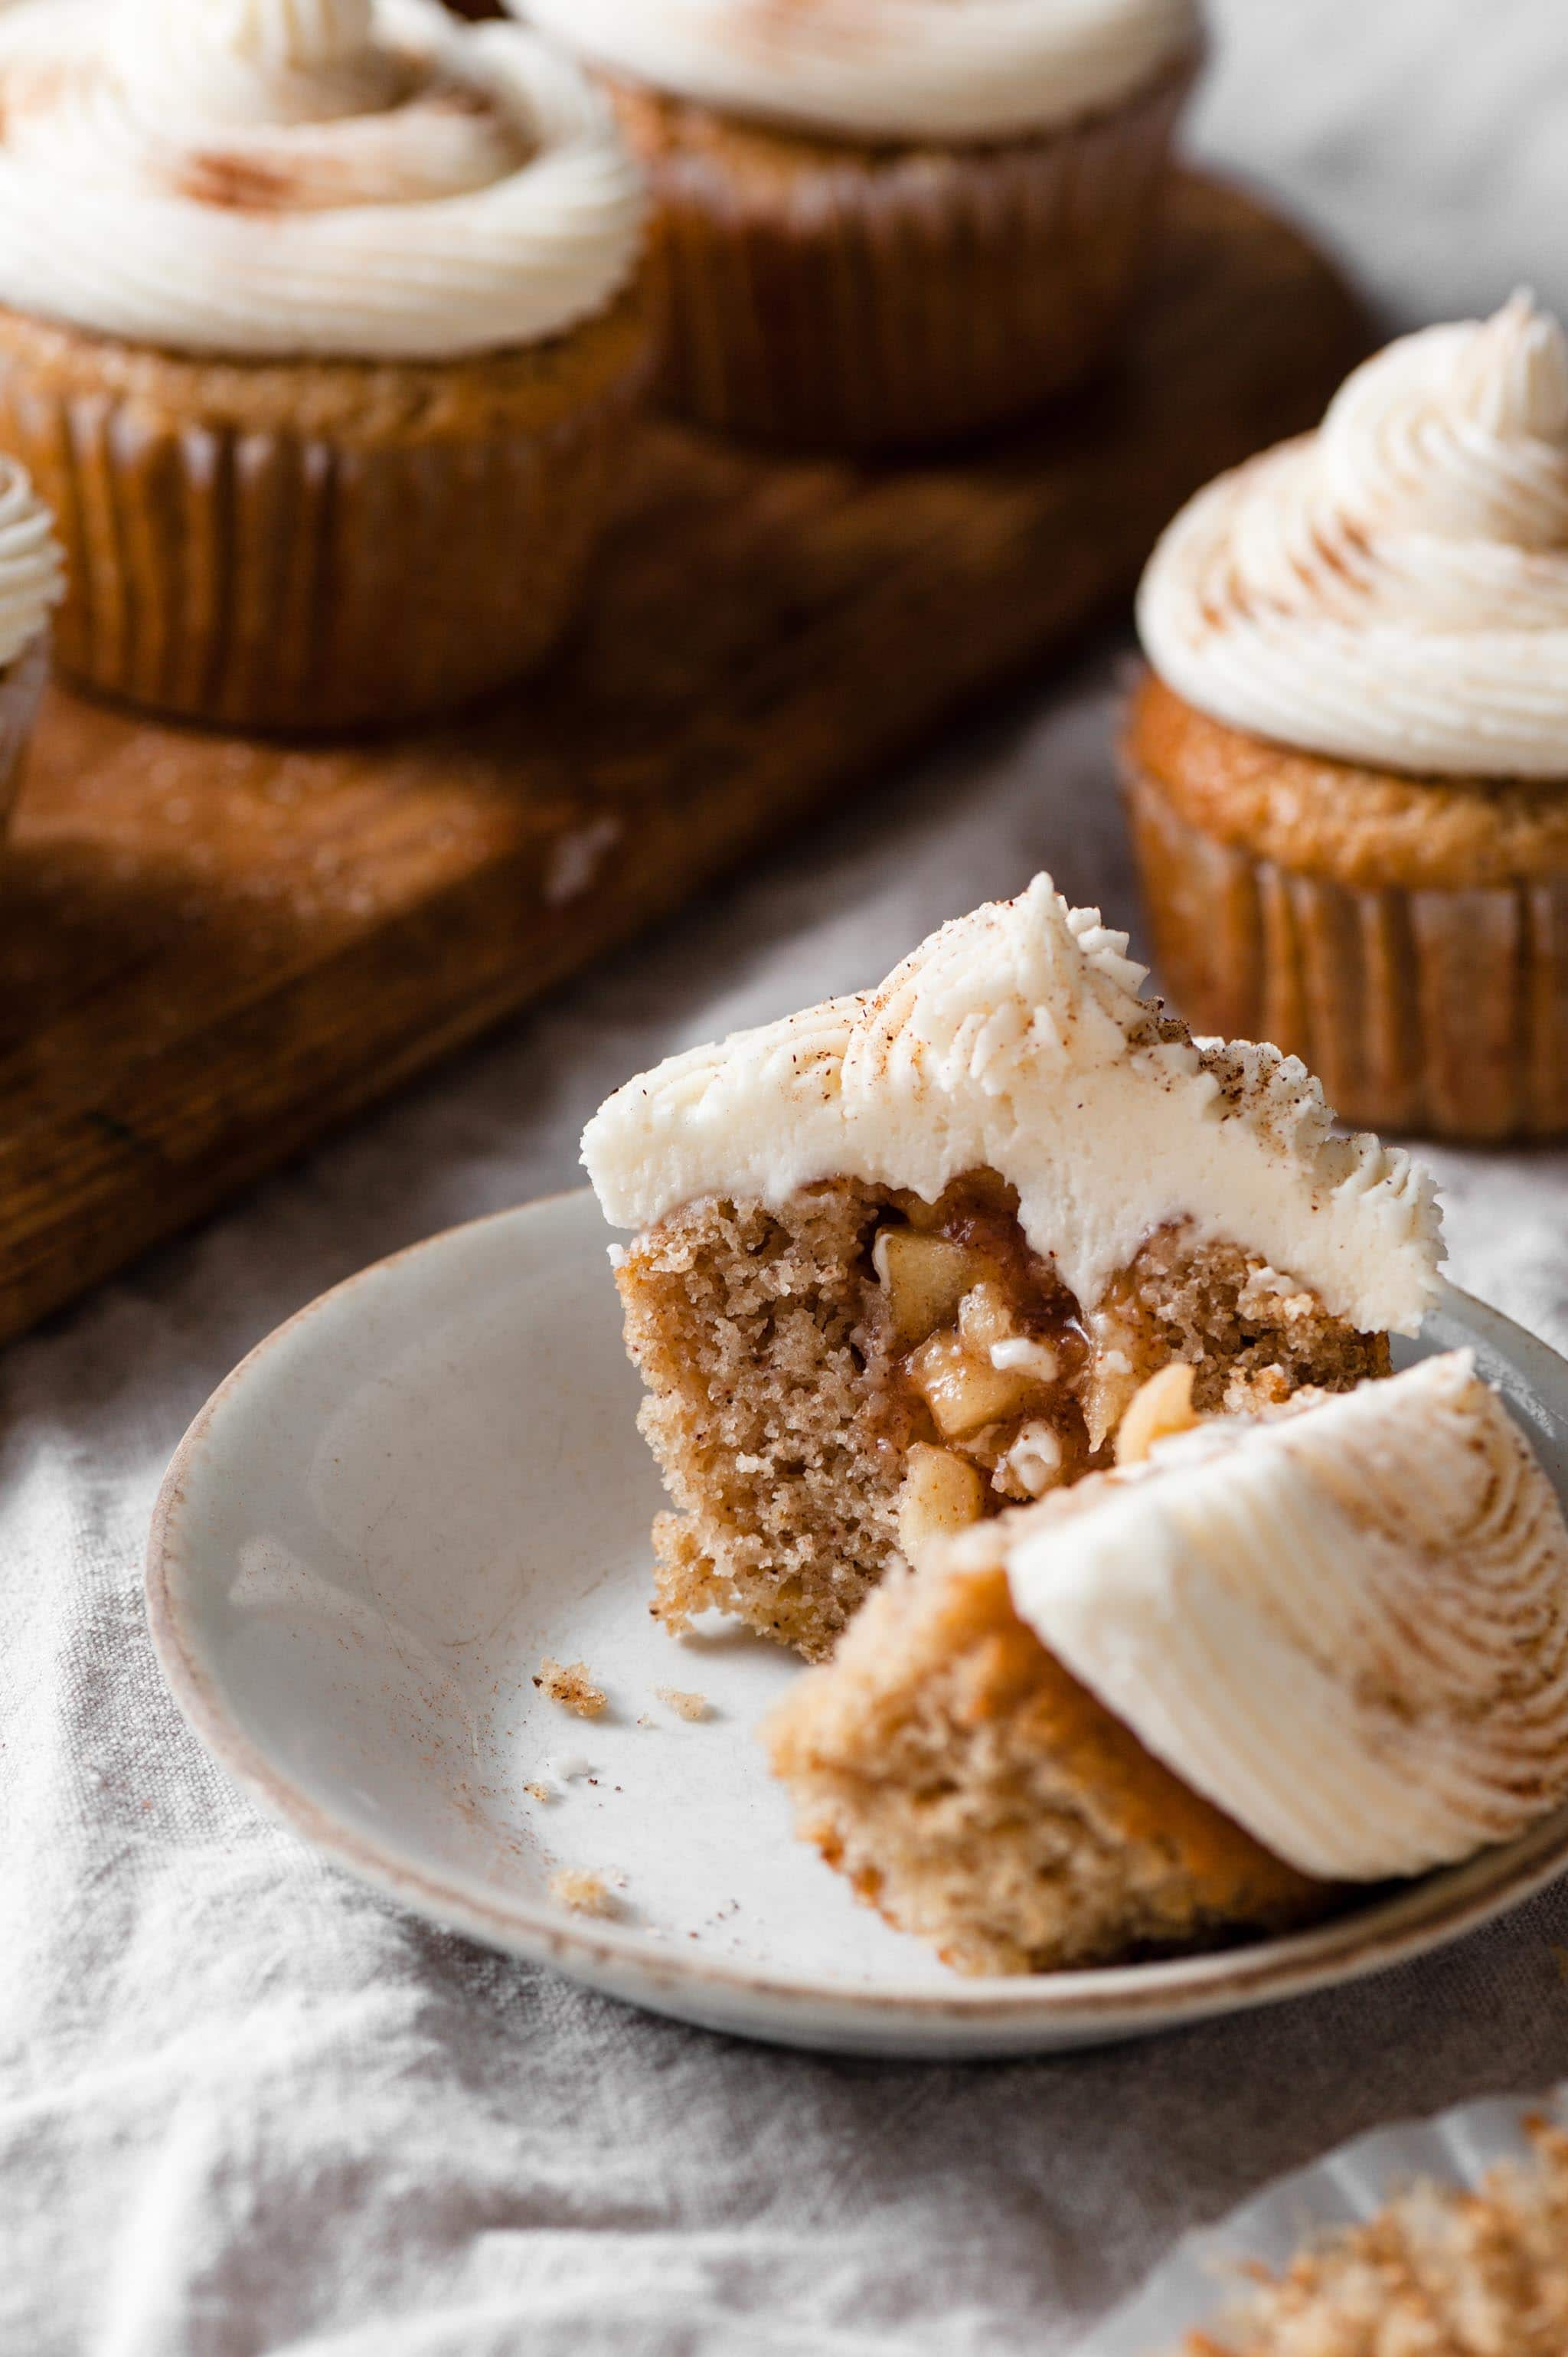 Filled Cupcakes with Apple Pie Filling